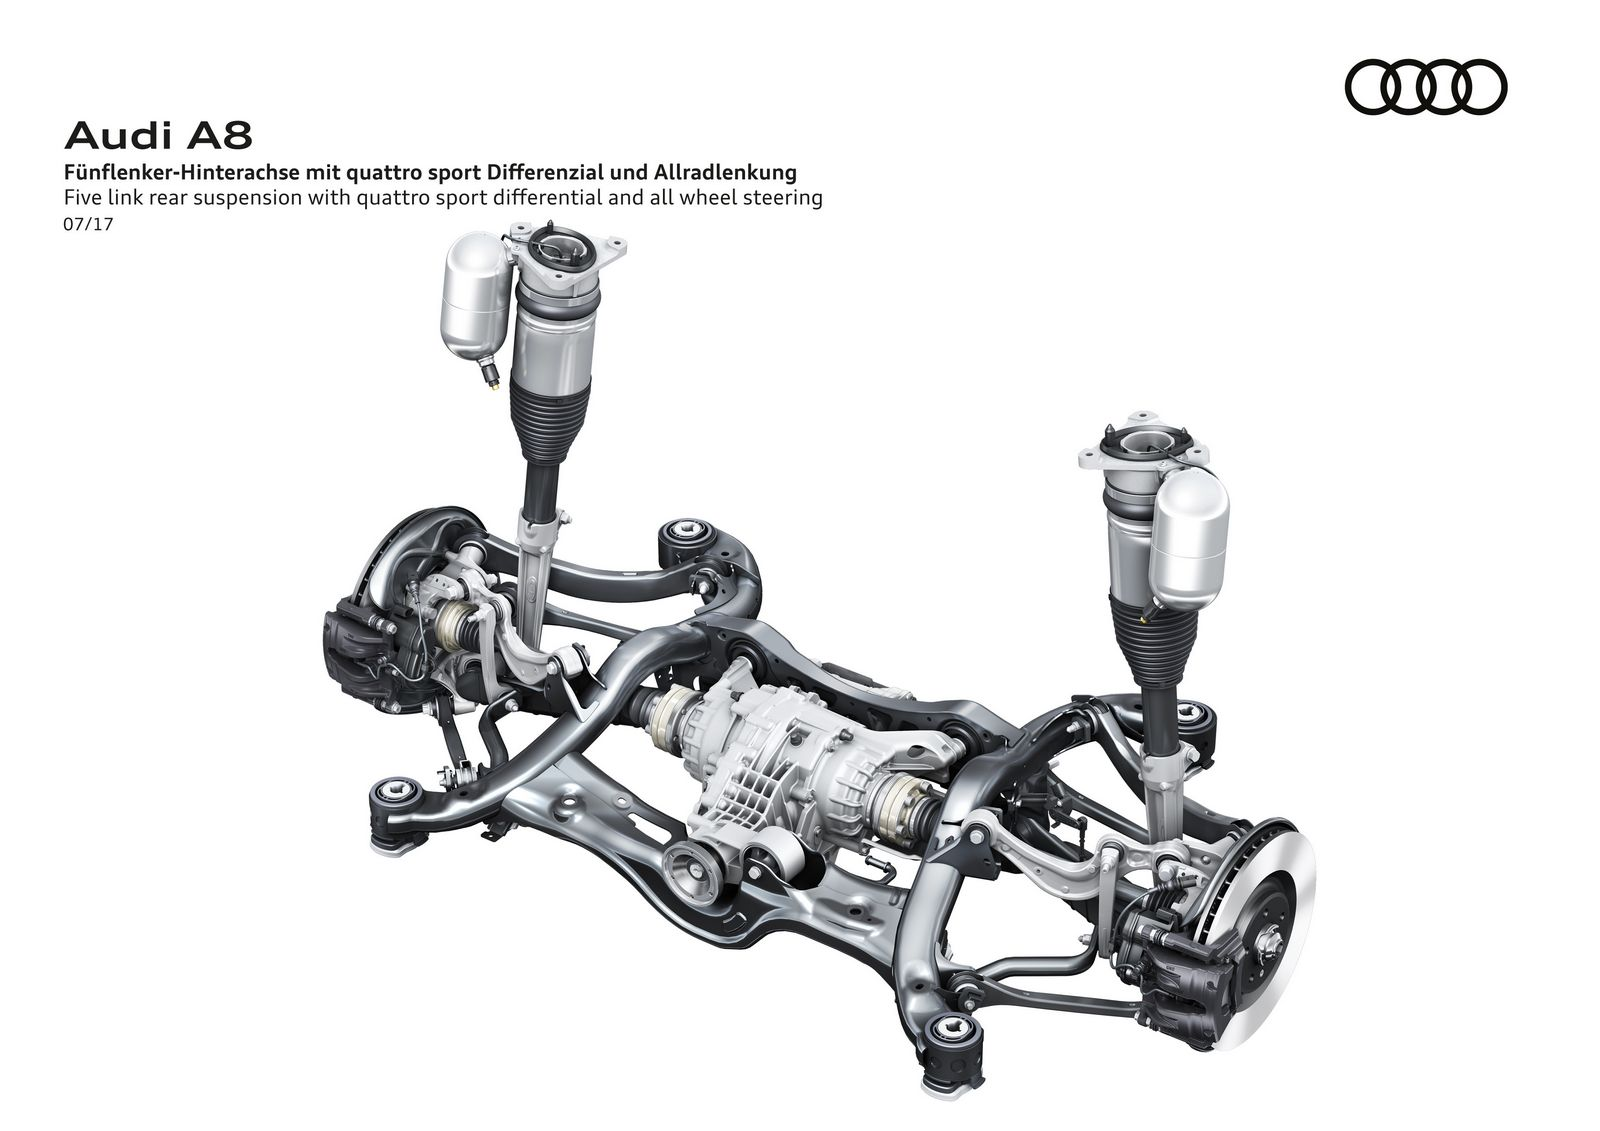 Five link rear suspension with quattro sport differential and all wheel steering